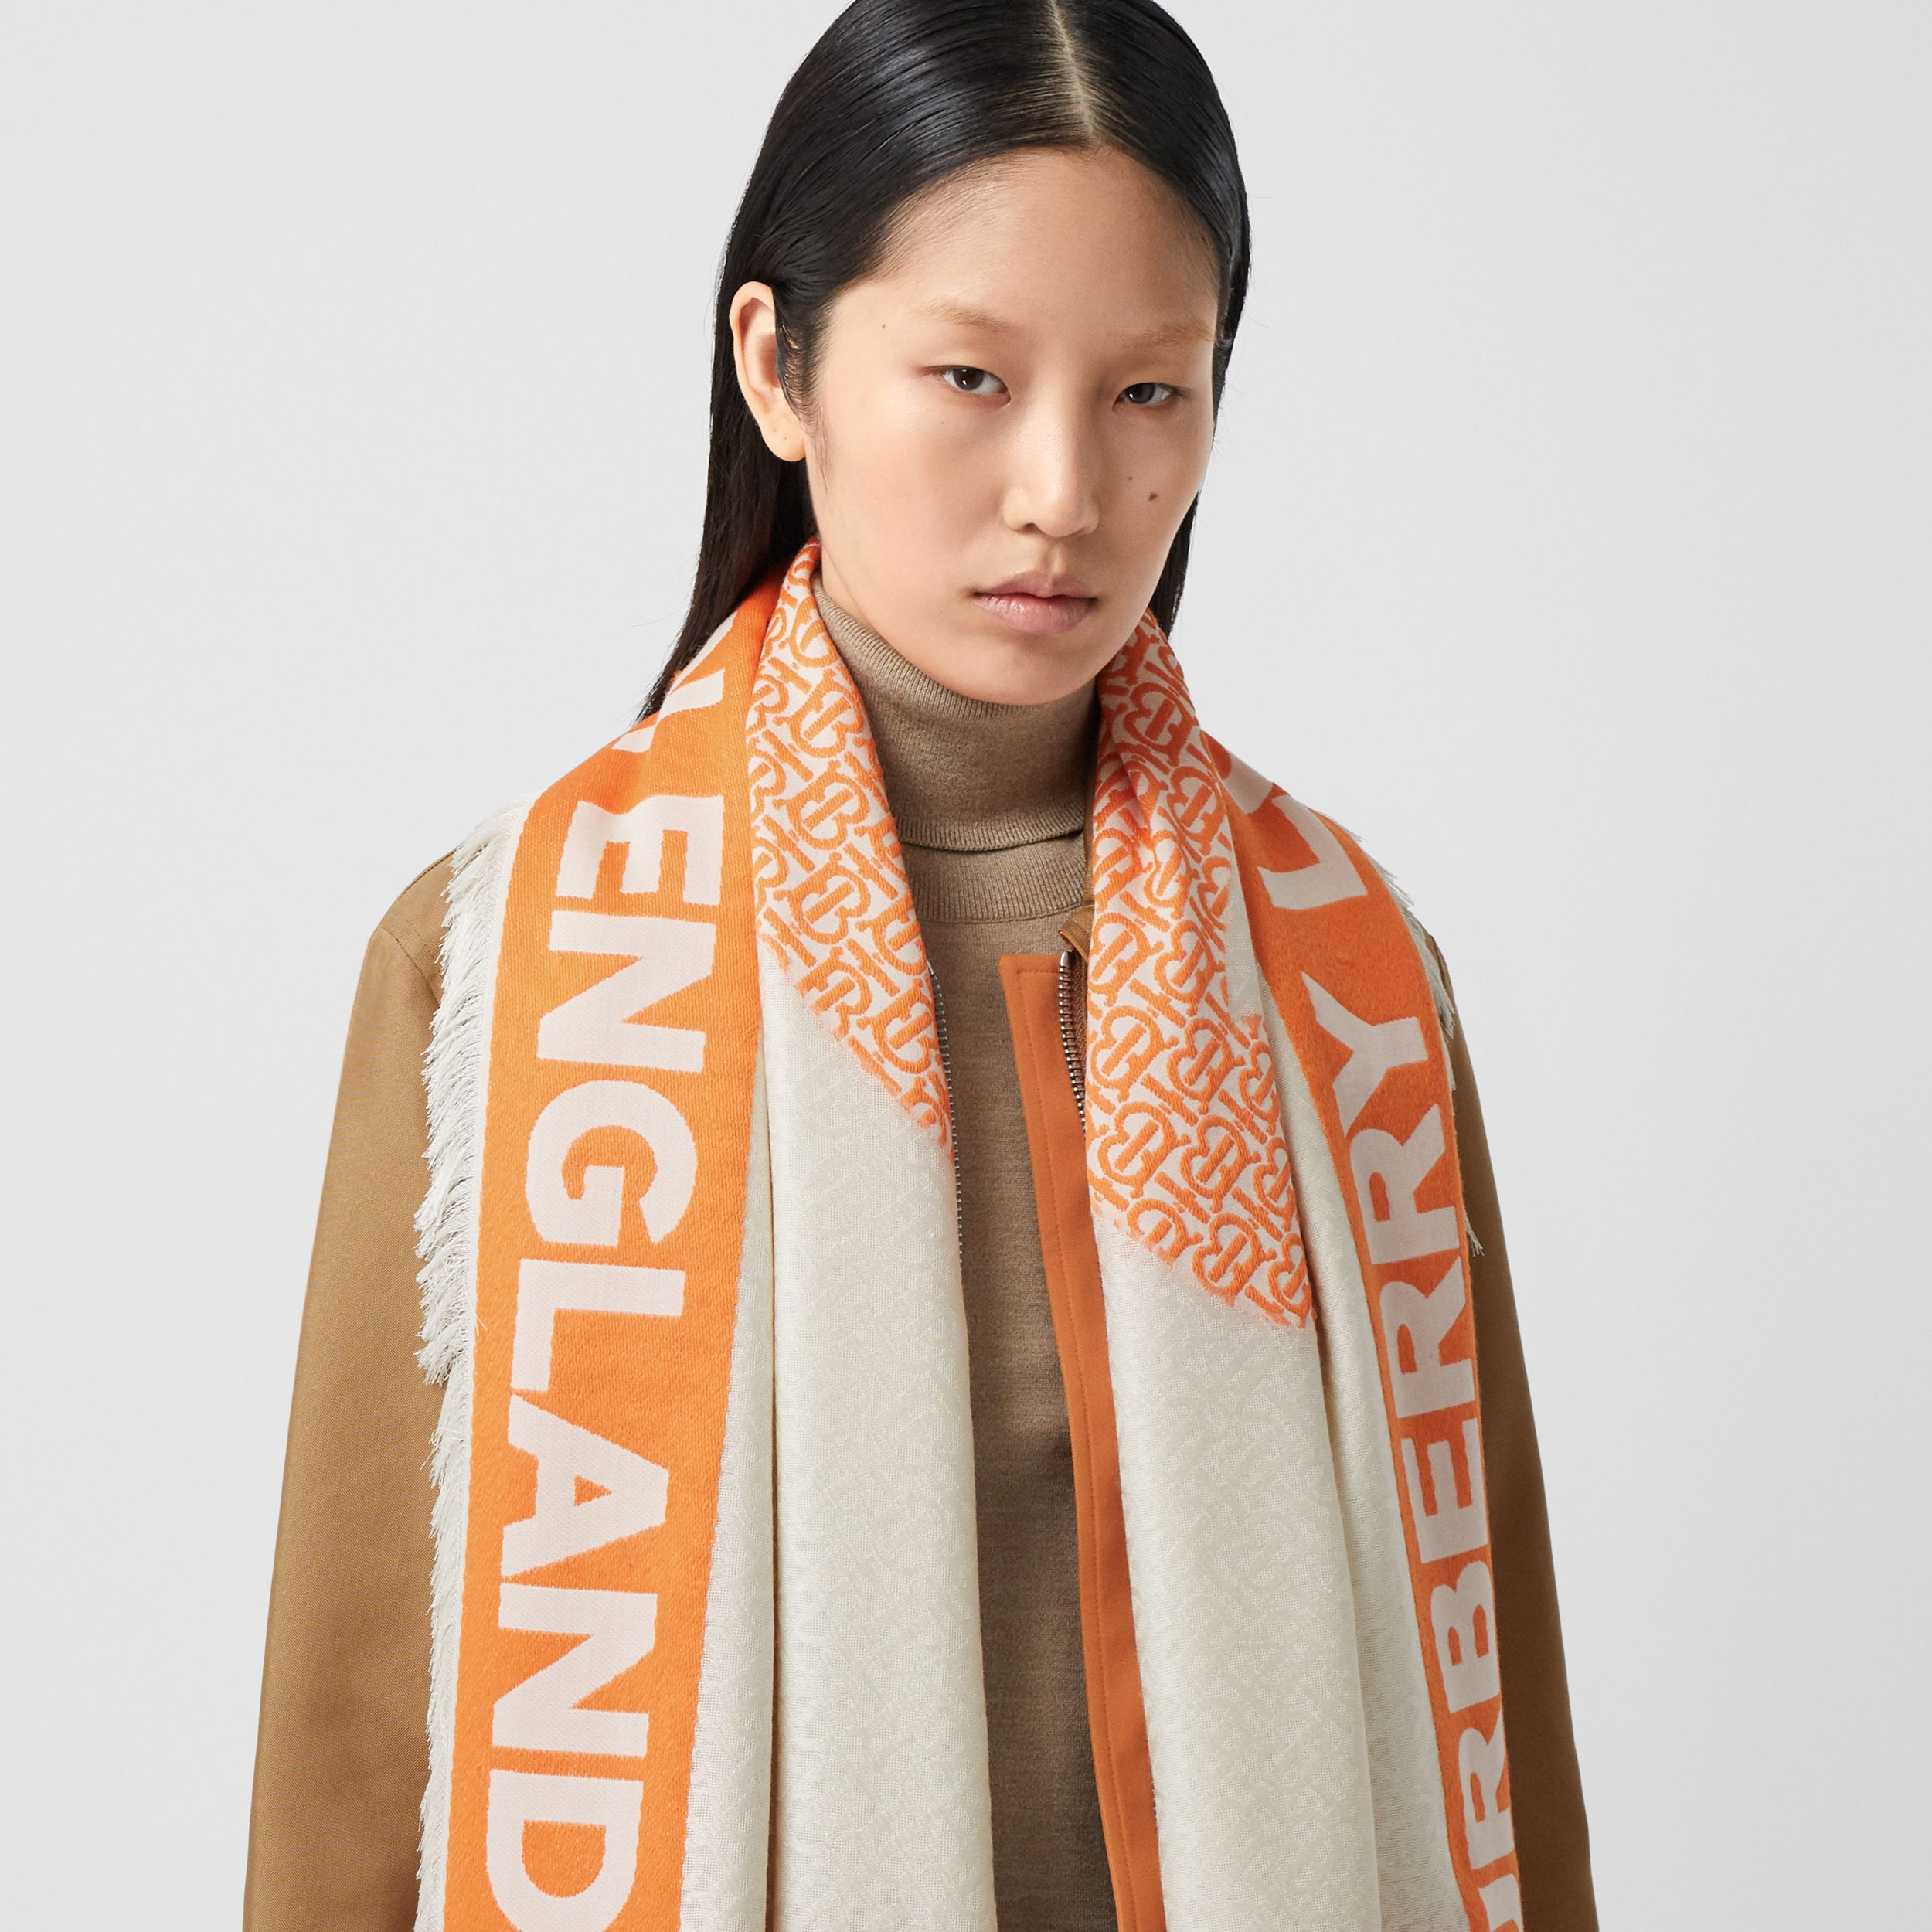 Monogram Fil Coupé Silk Blend Large Square Scarf in Orange | Burberry - 3